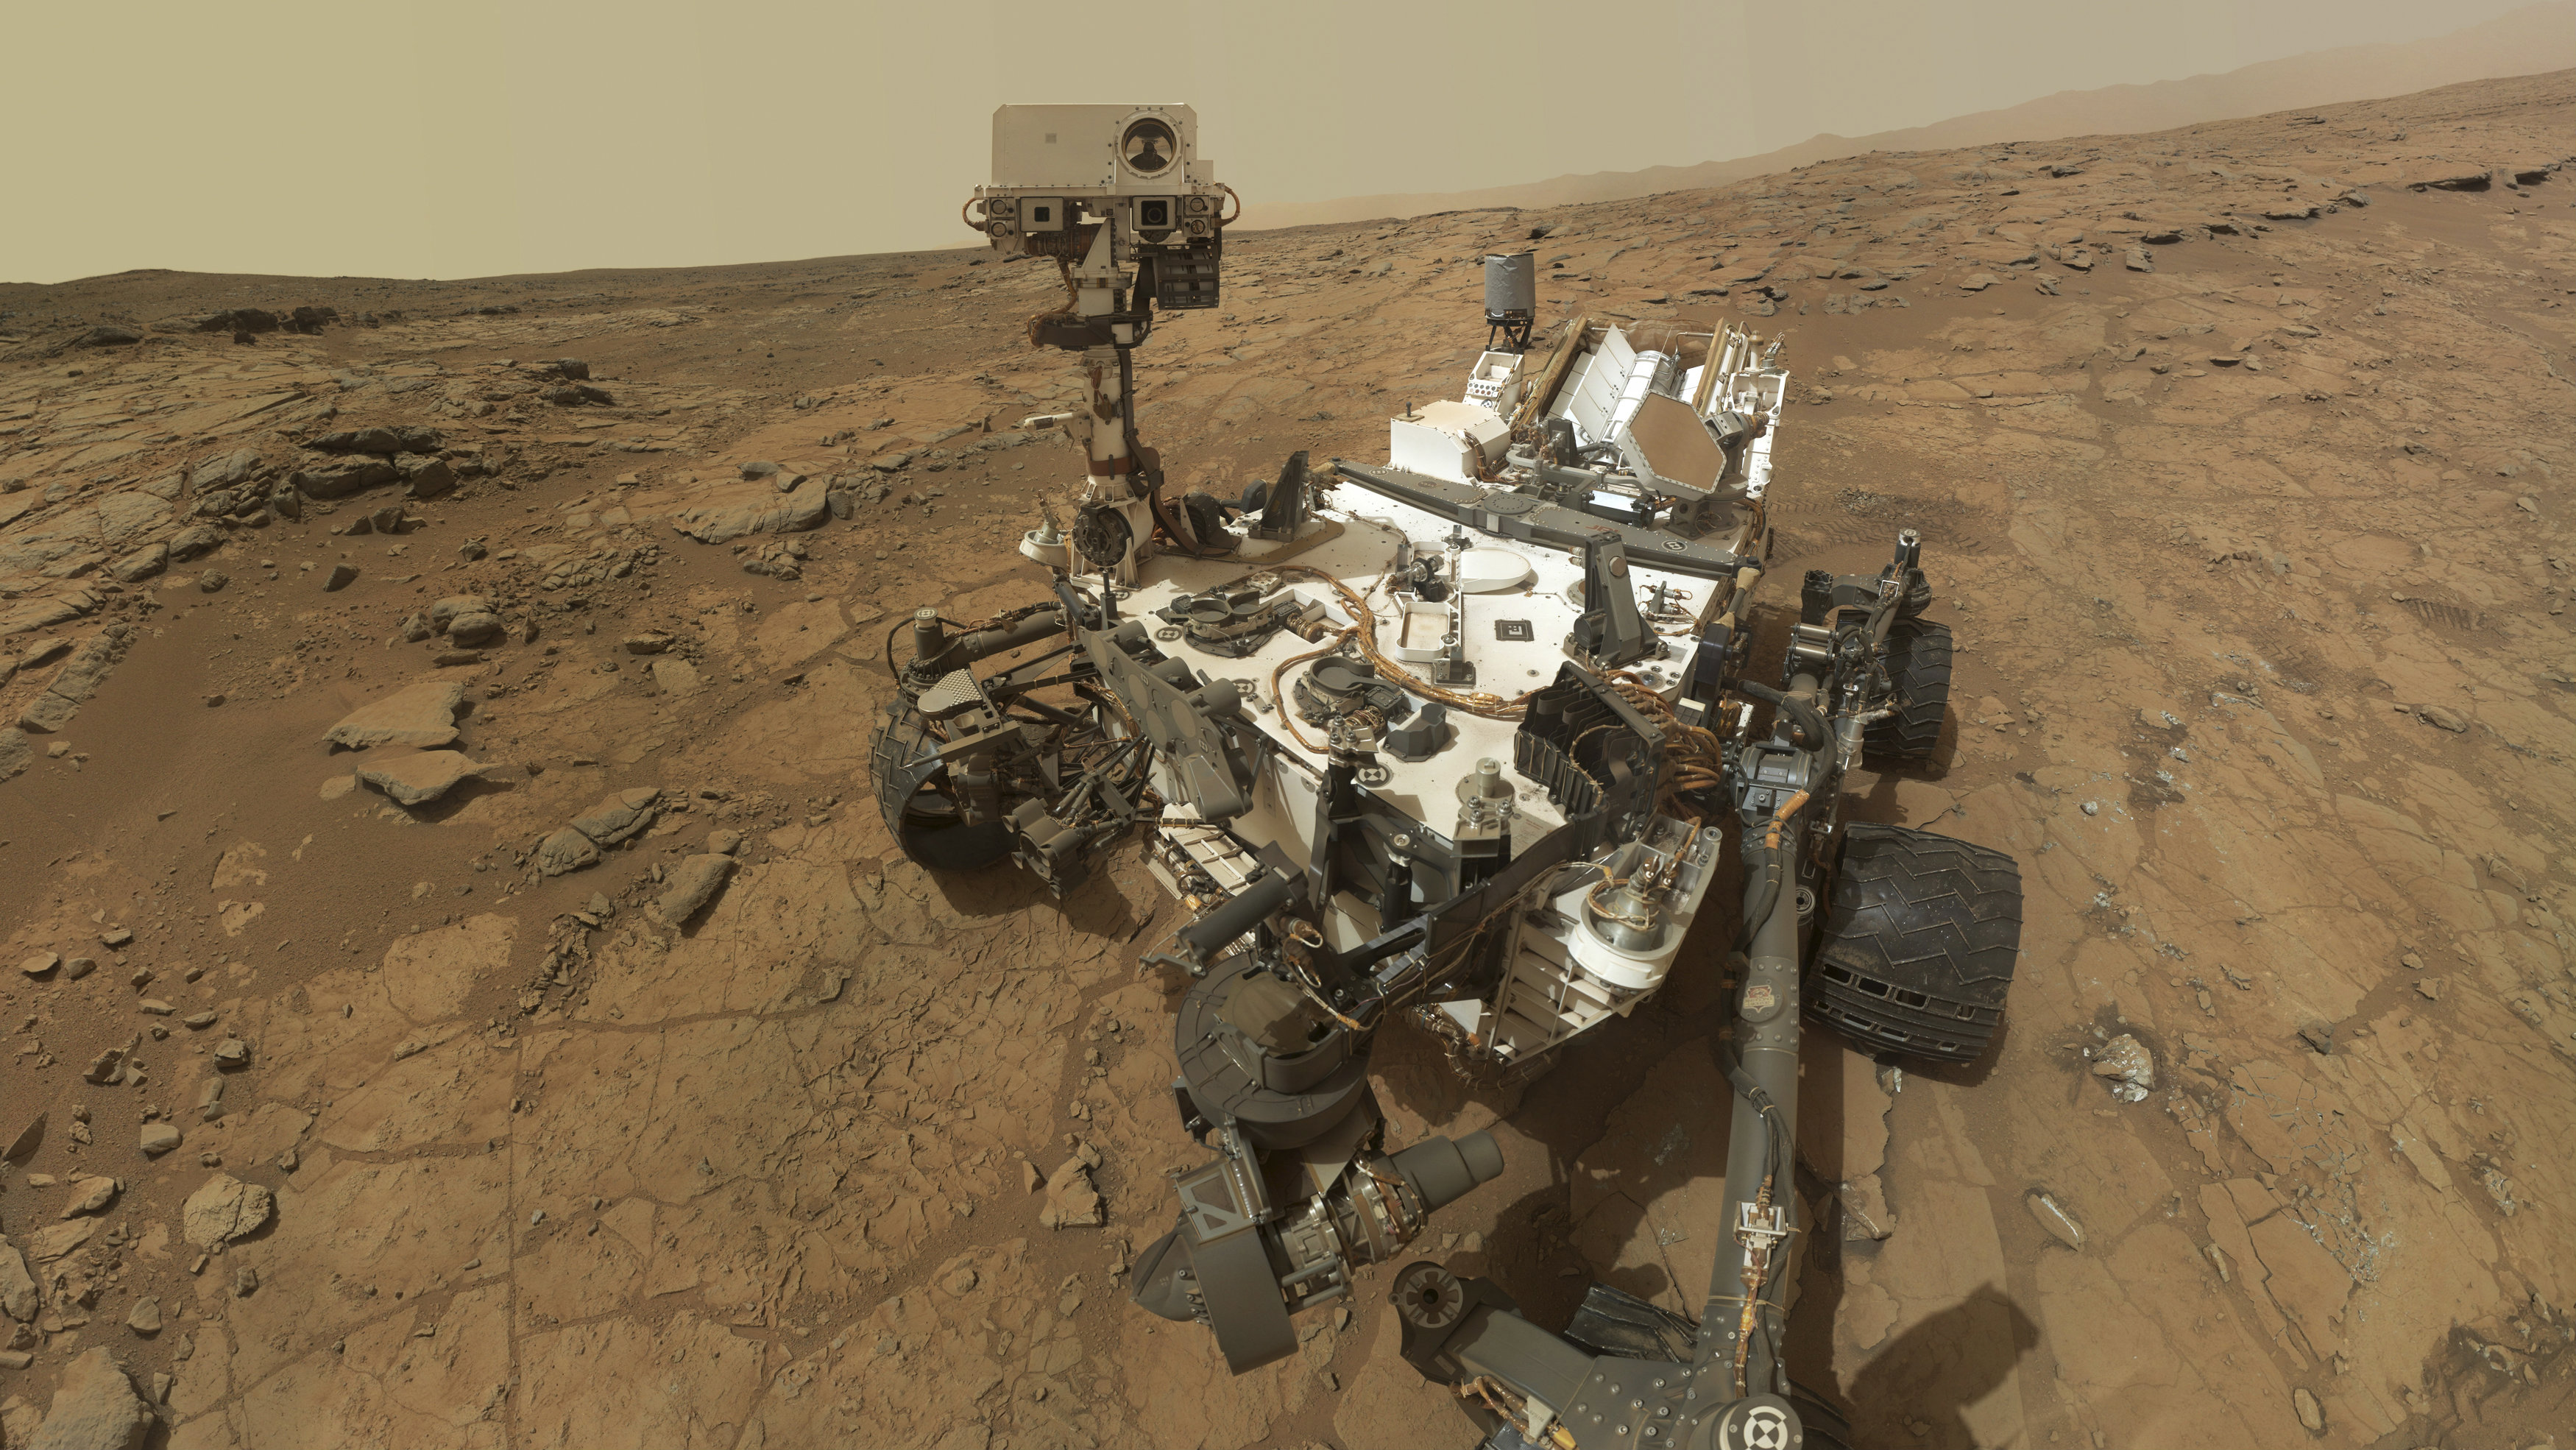 """Self-portrait of the rover Curiosity, combining dozens of exposures taken by the rover's Mars Hand Lens Imager (MAHLI) during the 177th Martian day, or sol, is seen in this February 3, 2013 handout image courtesy of NASA. The rover is positioned at a patch of flat outcrop called """"John Klein,"""" which was selected as the site for the first rock-drilling activities by Curiosity. The rover's robotic arm is not visible in the mosaic."""